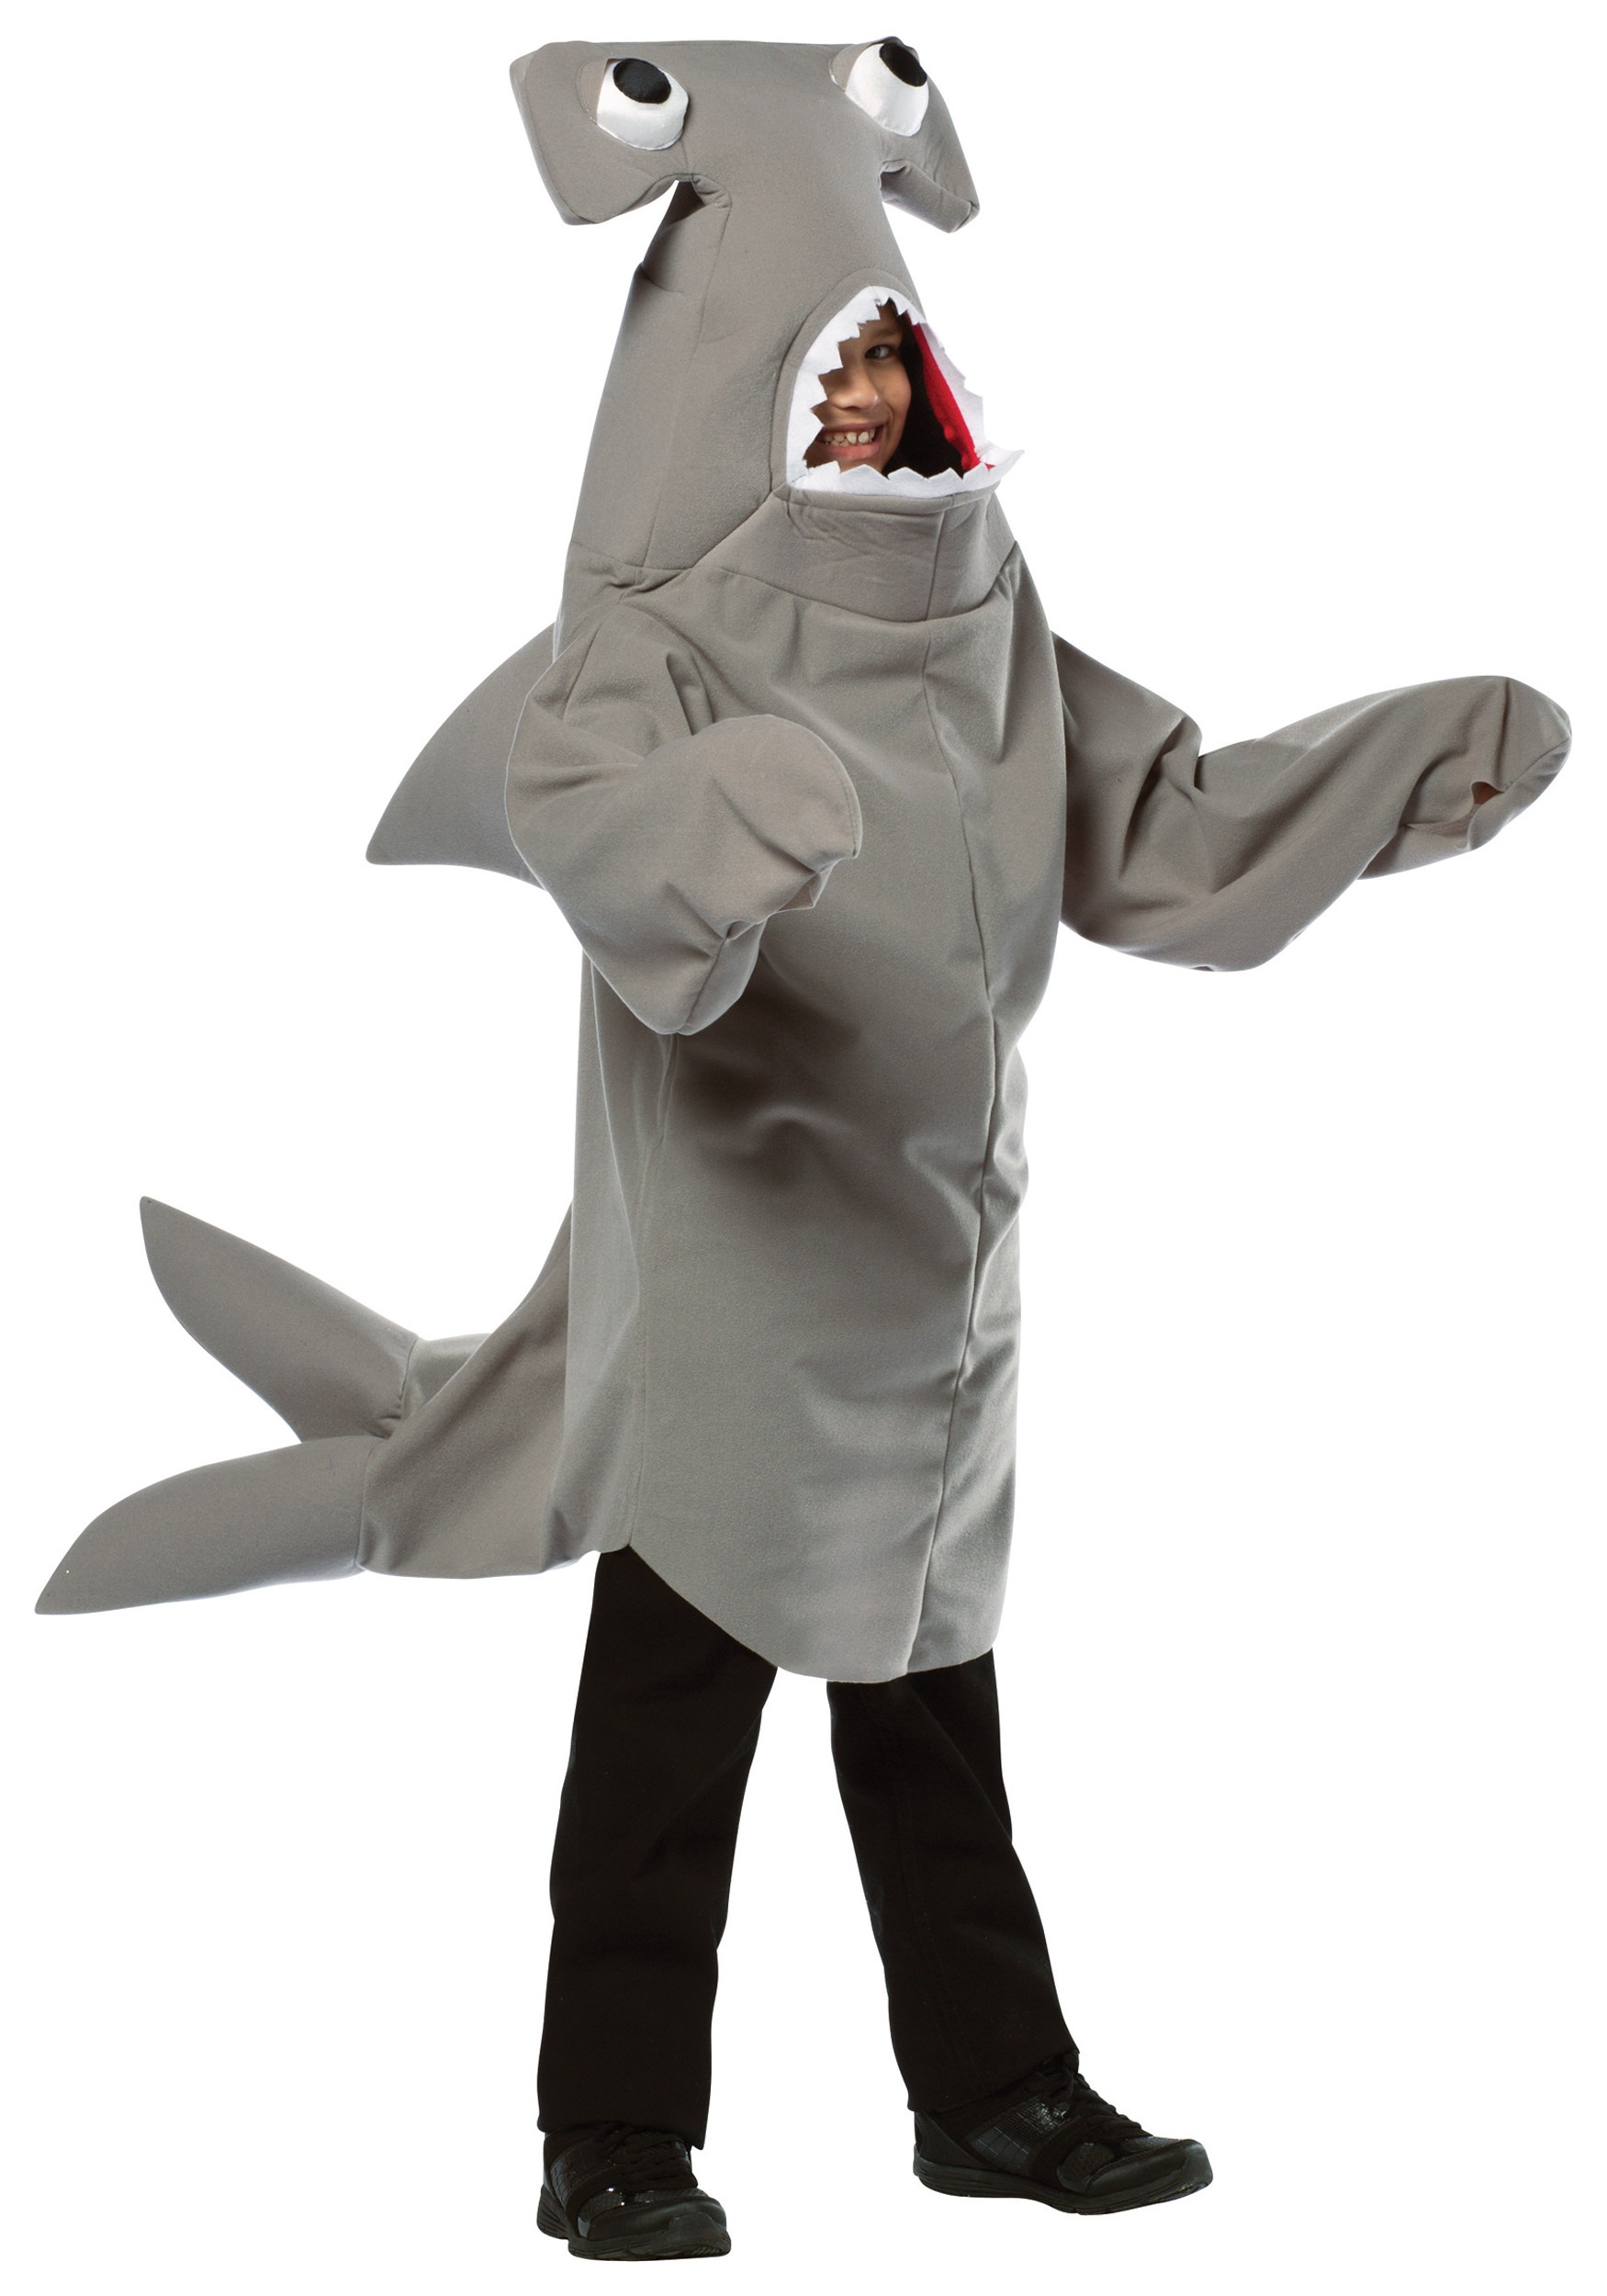 http://images.halloweencostumes.com/products/13760/1-1/hammerhead-shark-costume.jpg